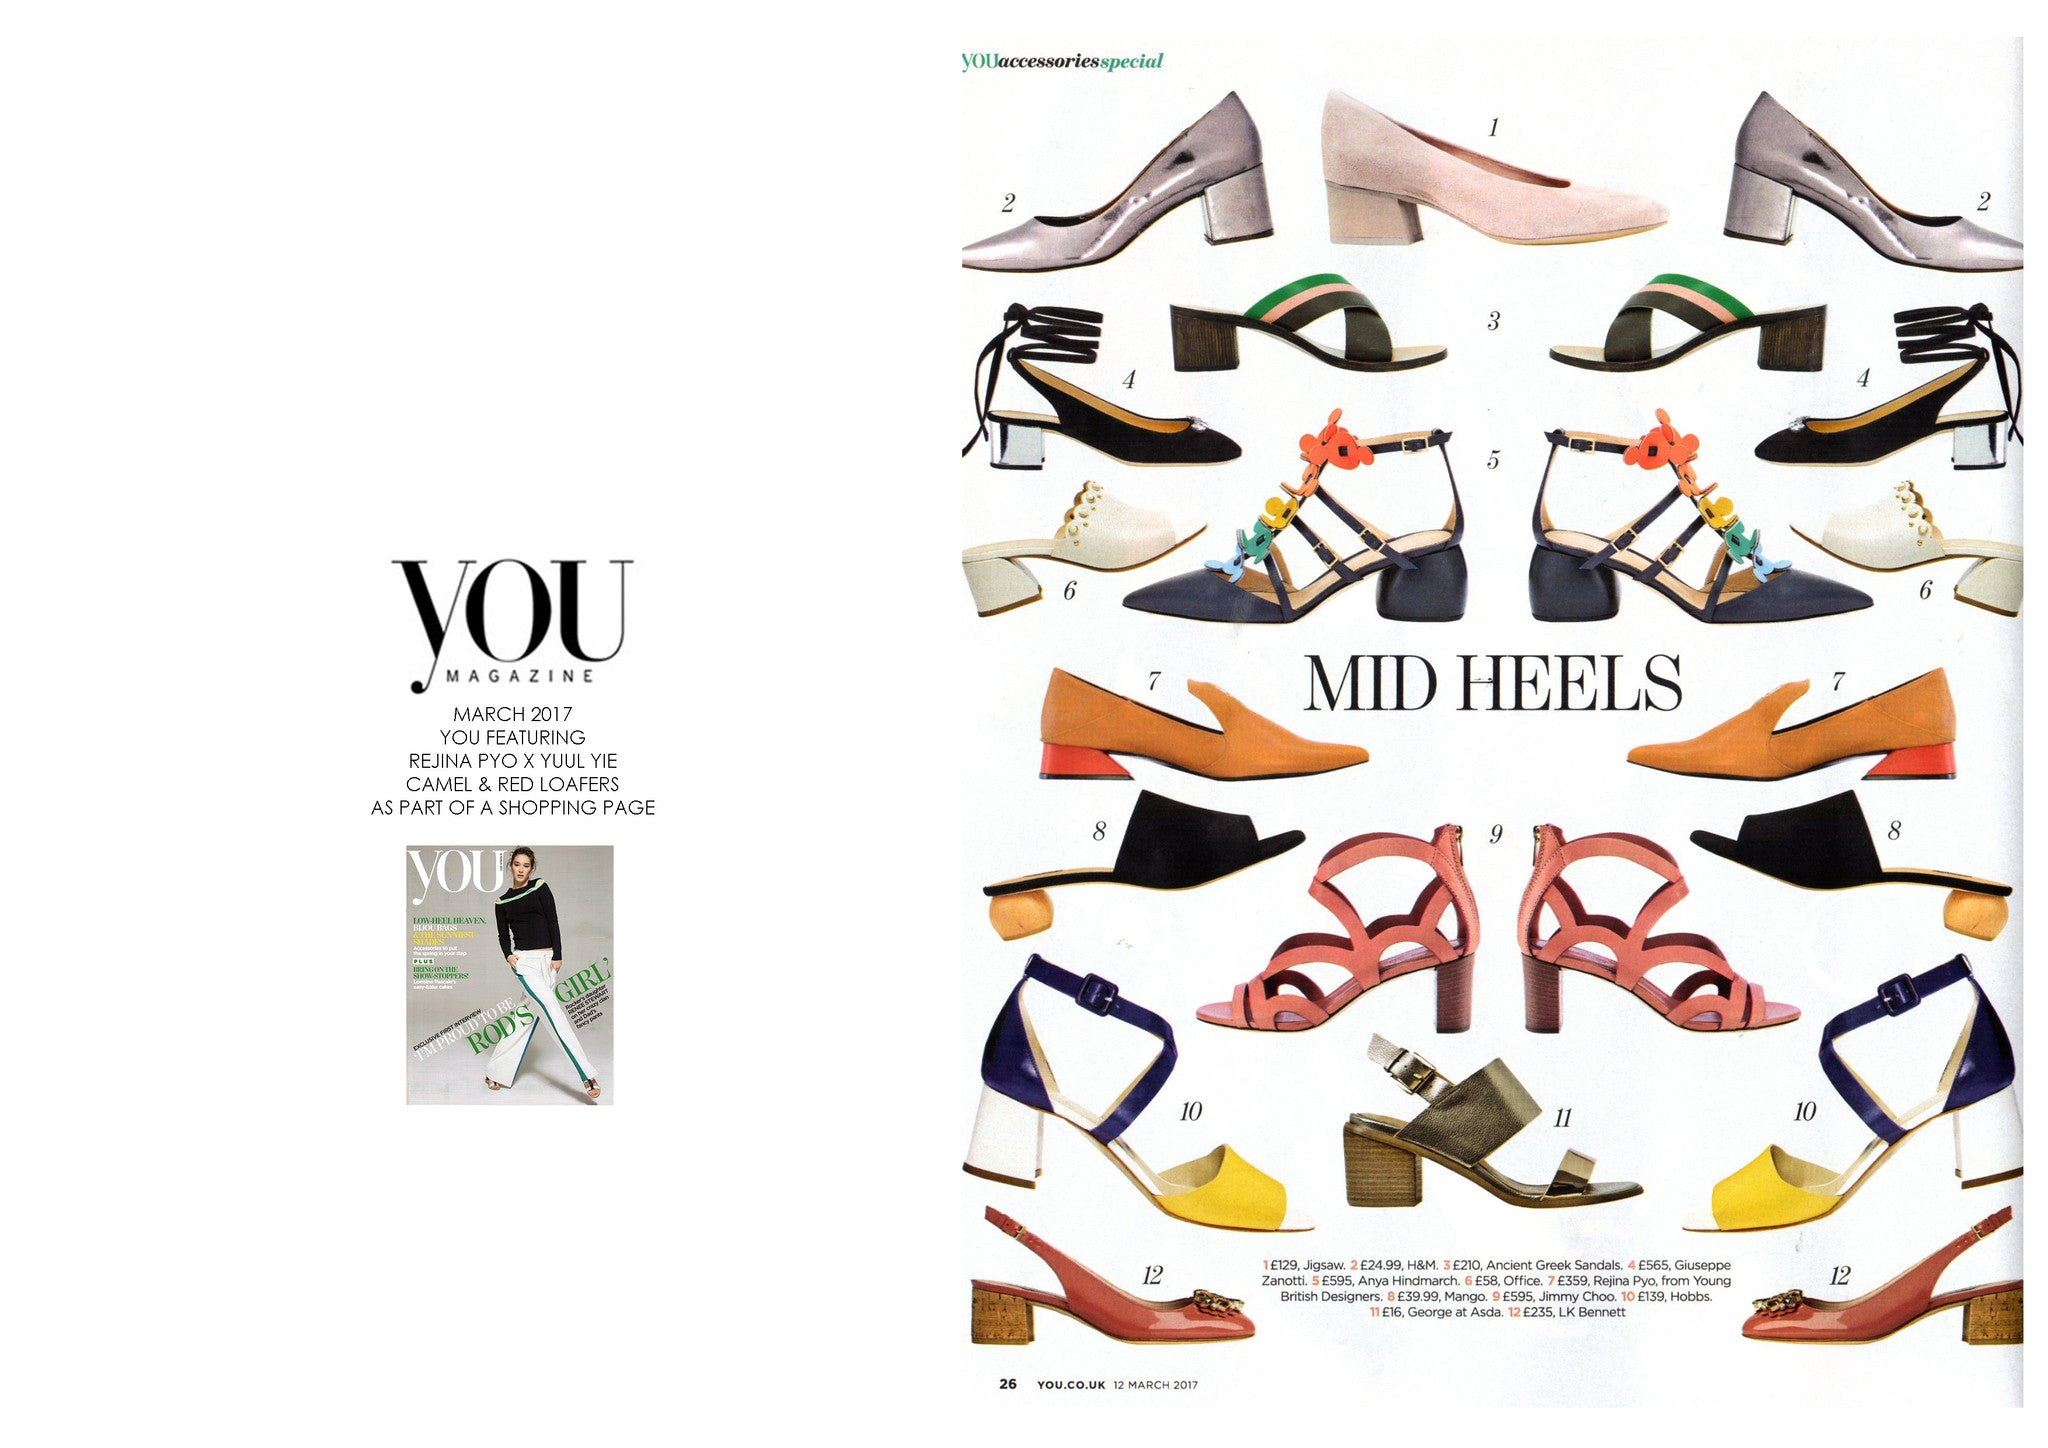 YOU MAGAZINE: FEATURING REJINA PYO X YUUL YIE / CAMEL & RED LOAFERS AS PART OF A SHOPPING PAGE